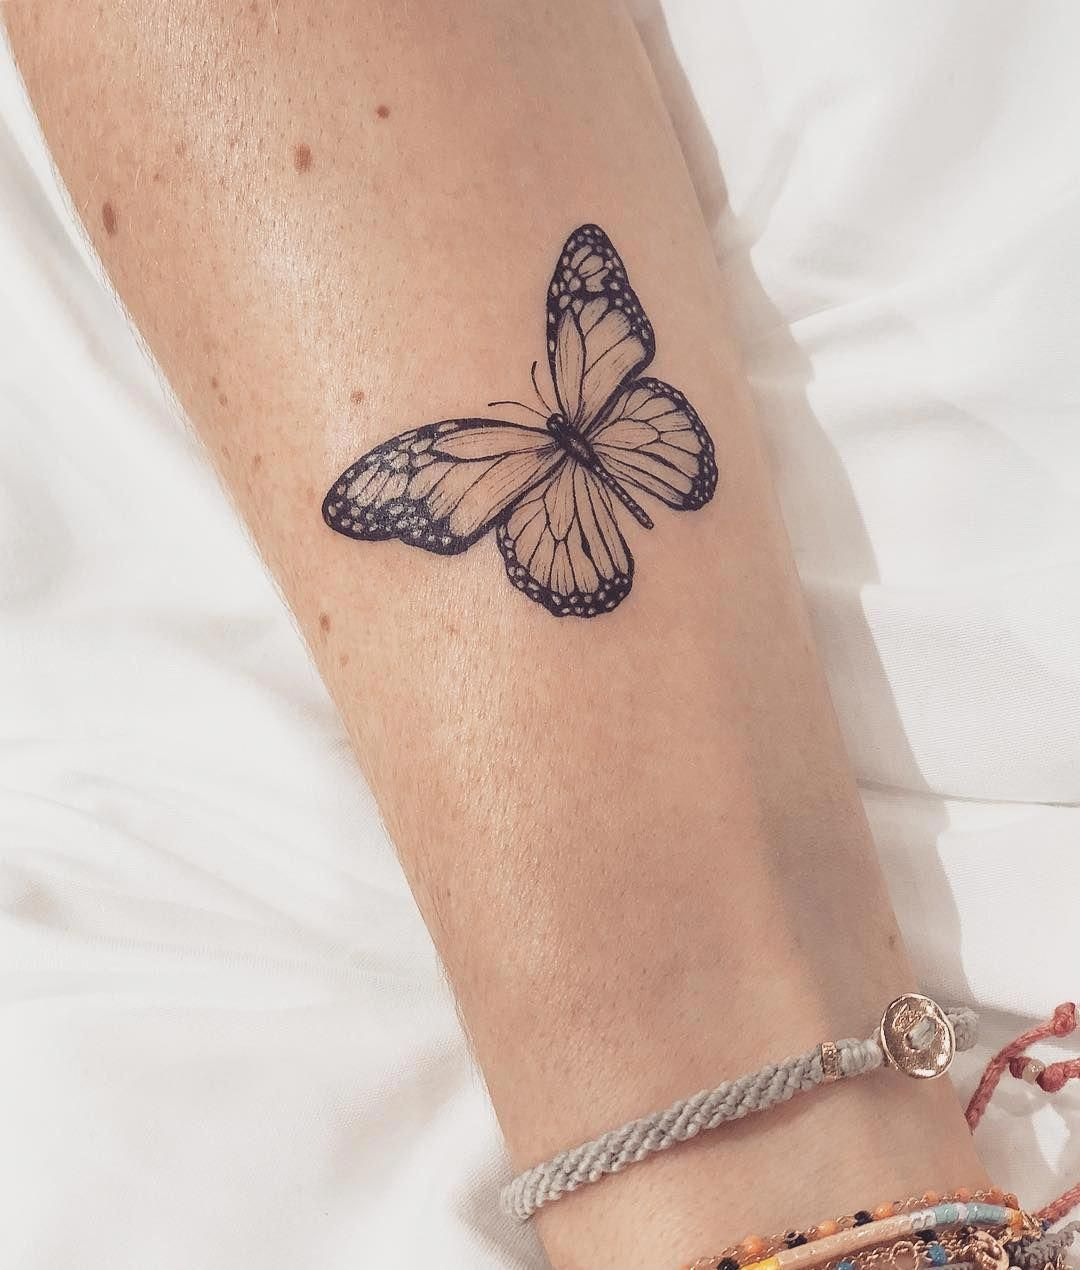 Small Minimalist Tattoos Minimalisttattoos Butterfly Tattoos For Women Tattoos For Women Tattoos